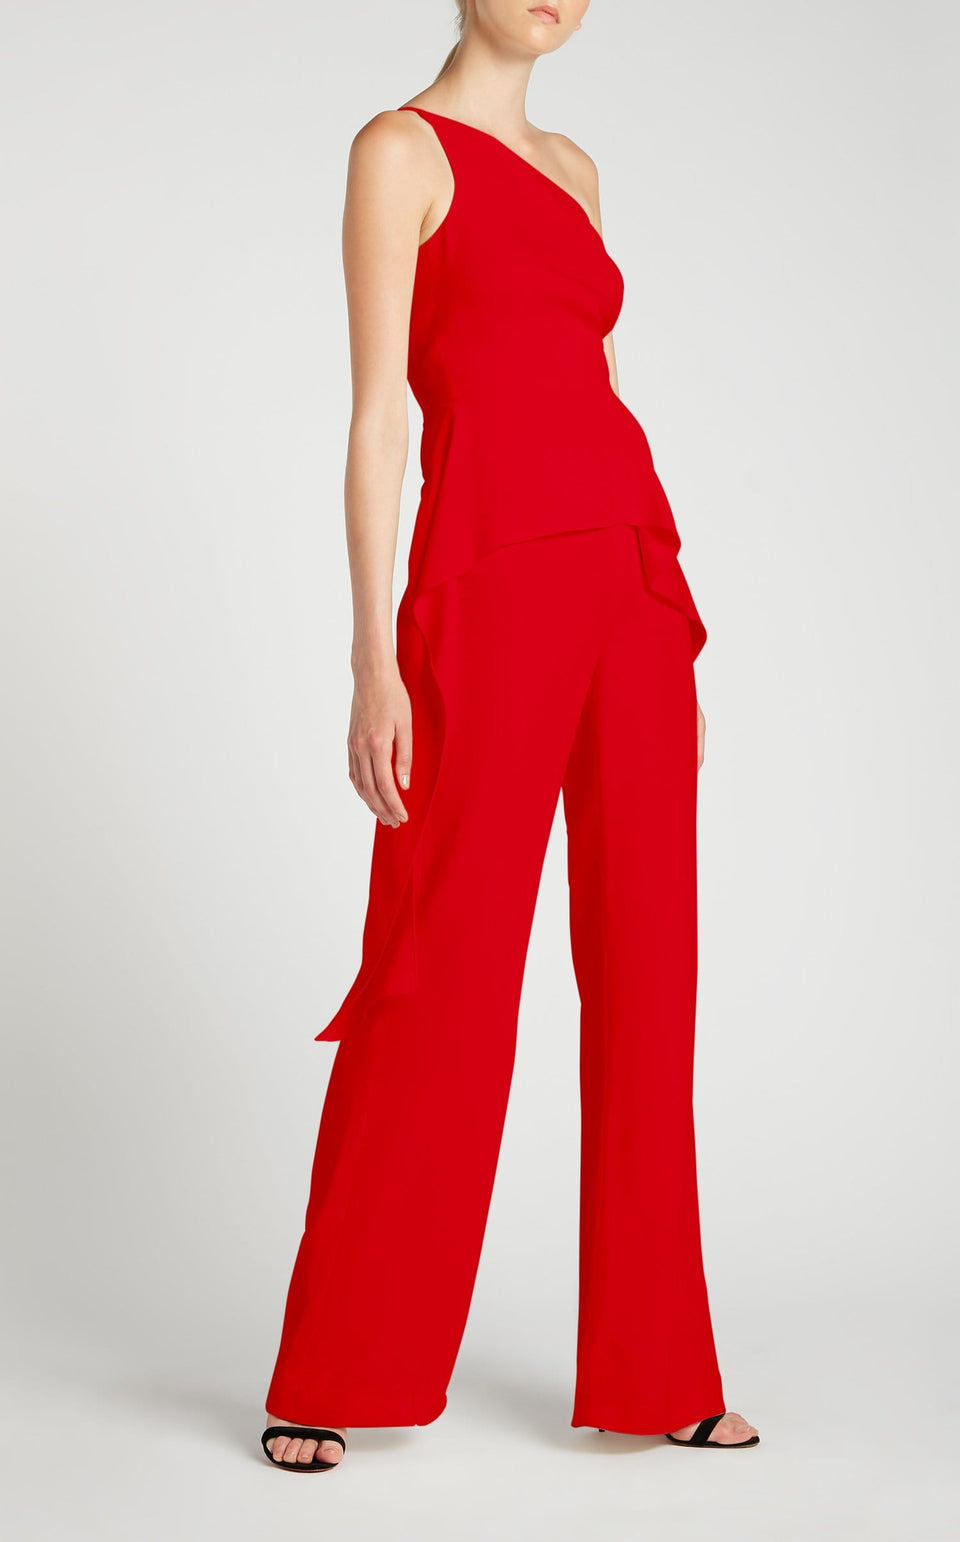 Charlesworth Jumpsuit In Poppy Red from Roland Mouret